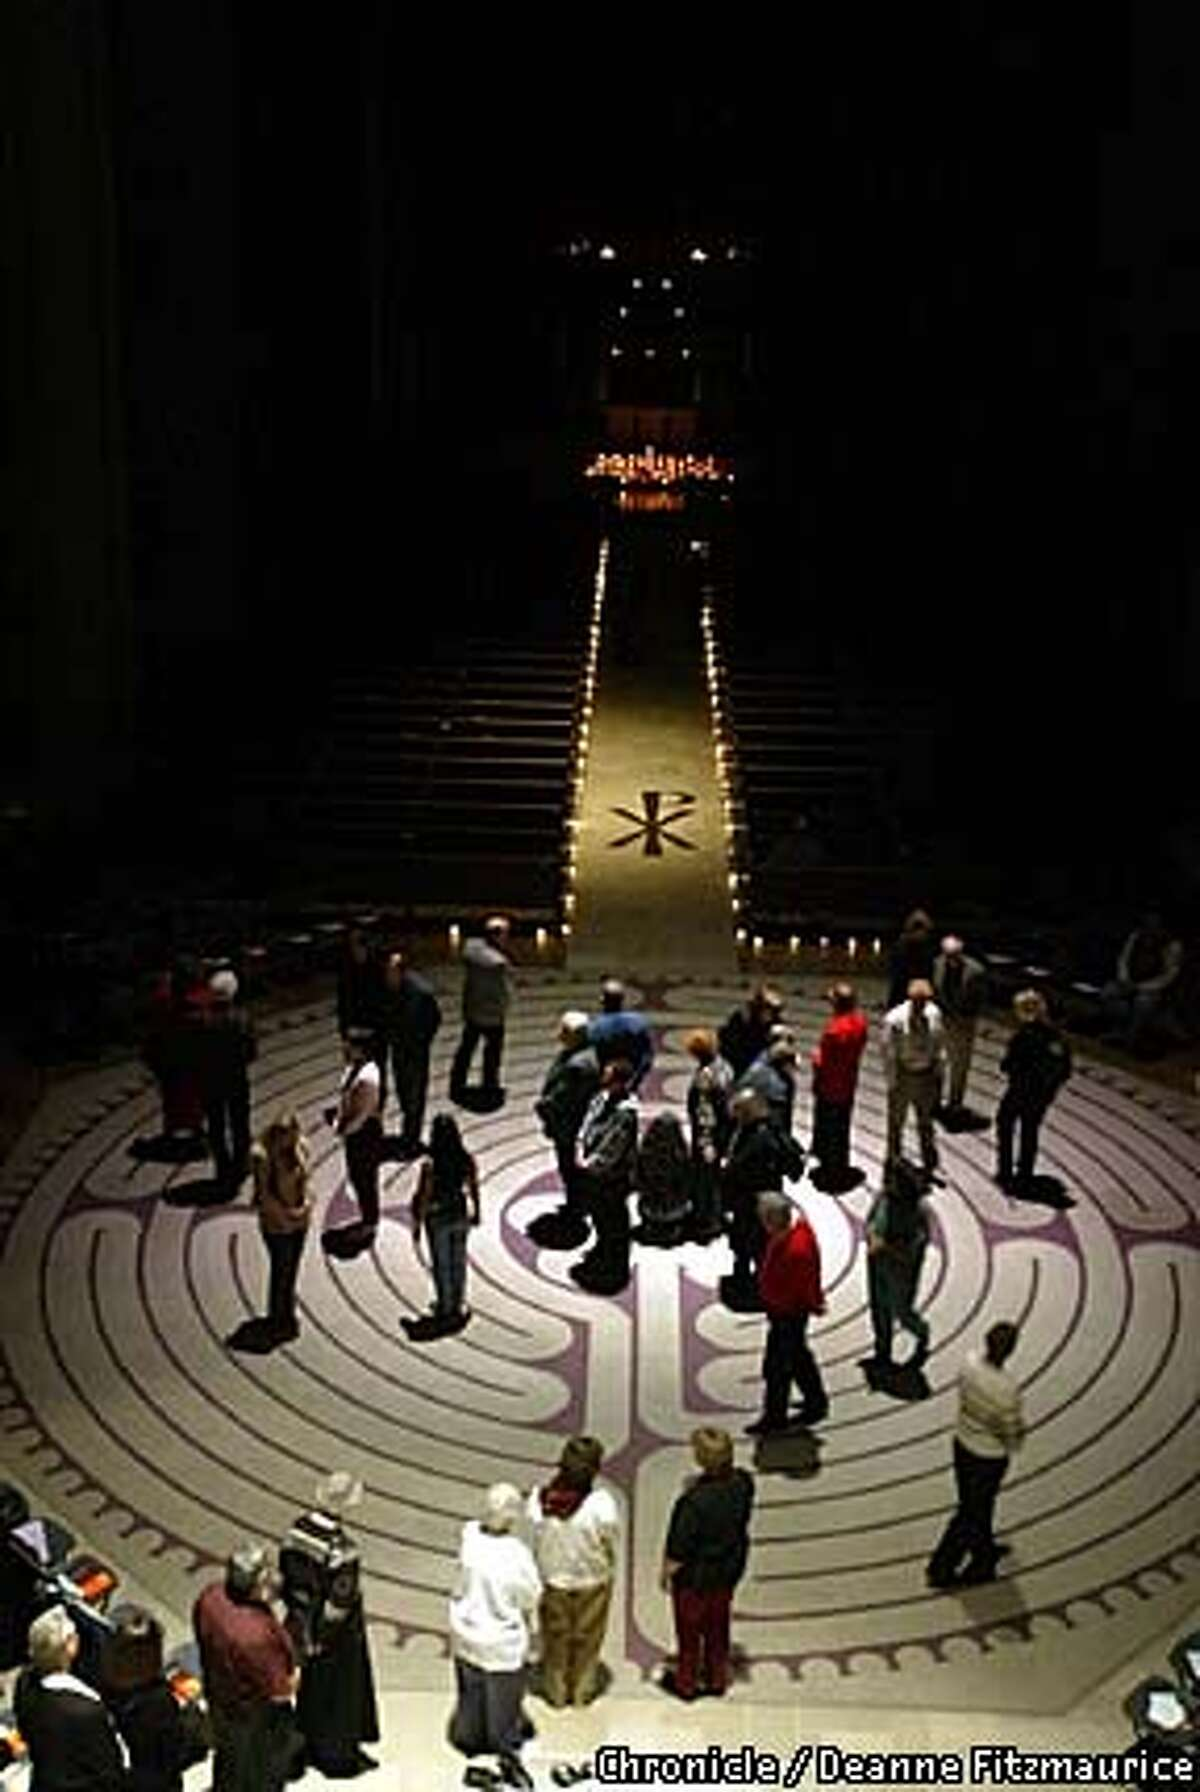 Lauren Artress founded Veriiditas, World-Wide Labyrinth Project, which hails labyrinth-walking as a path both to spiritual peace and heartfelt activism on behalf of humanity. On the second friday of every month, she hosts lectures and walks through the labyrinth at Grace Cathedral. CHRONICLE PHOTO BY DEANNE FITZMAURICE